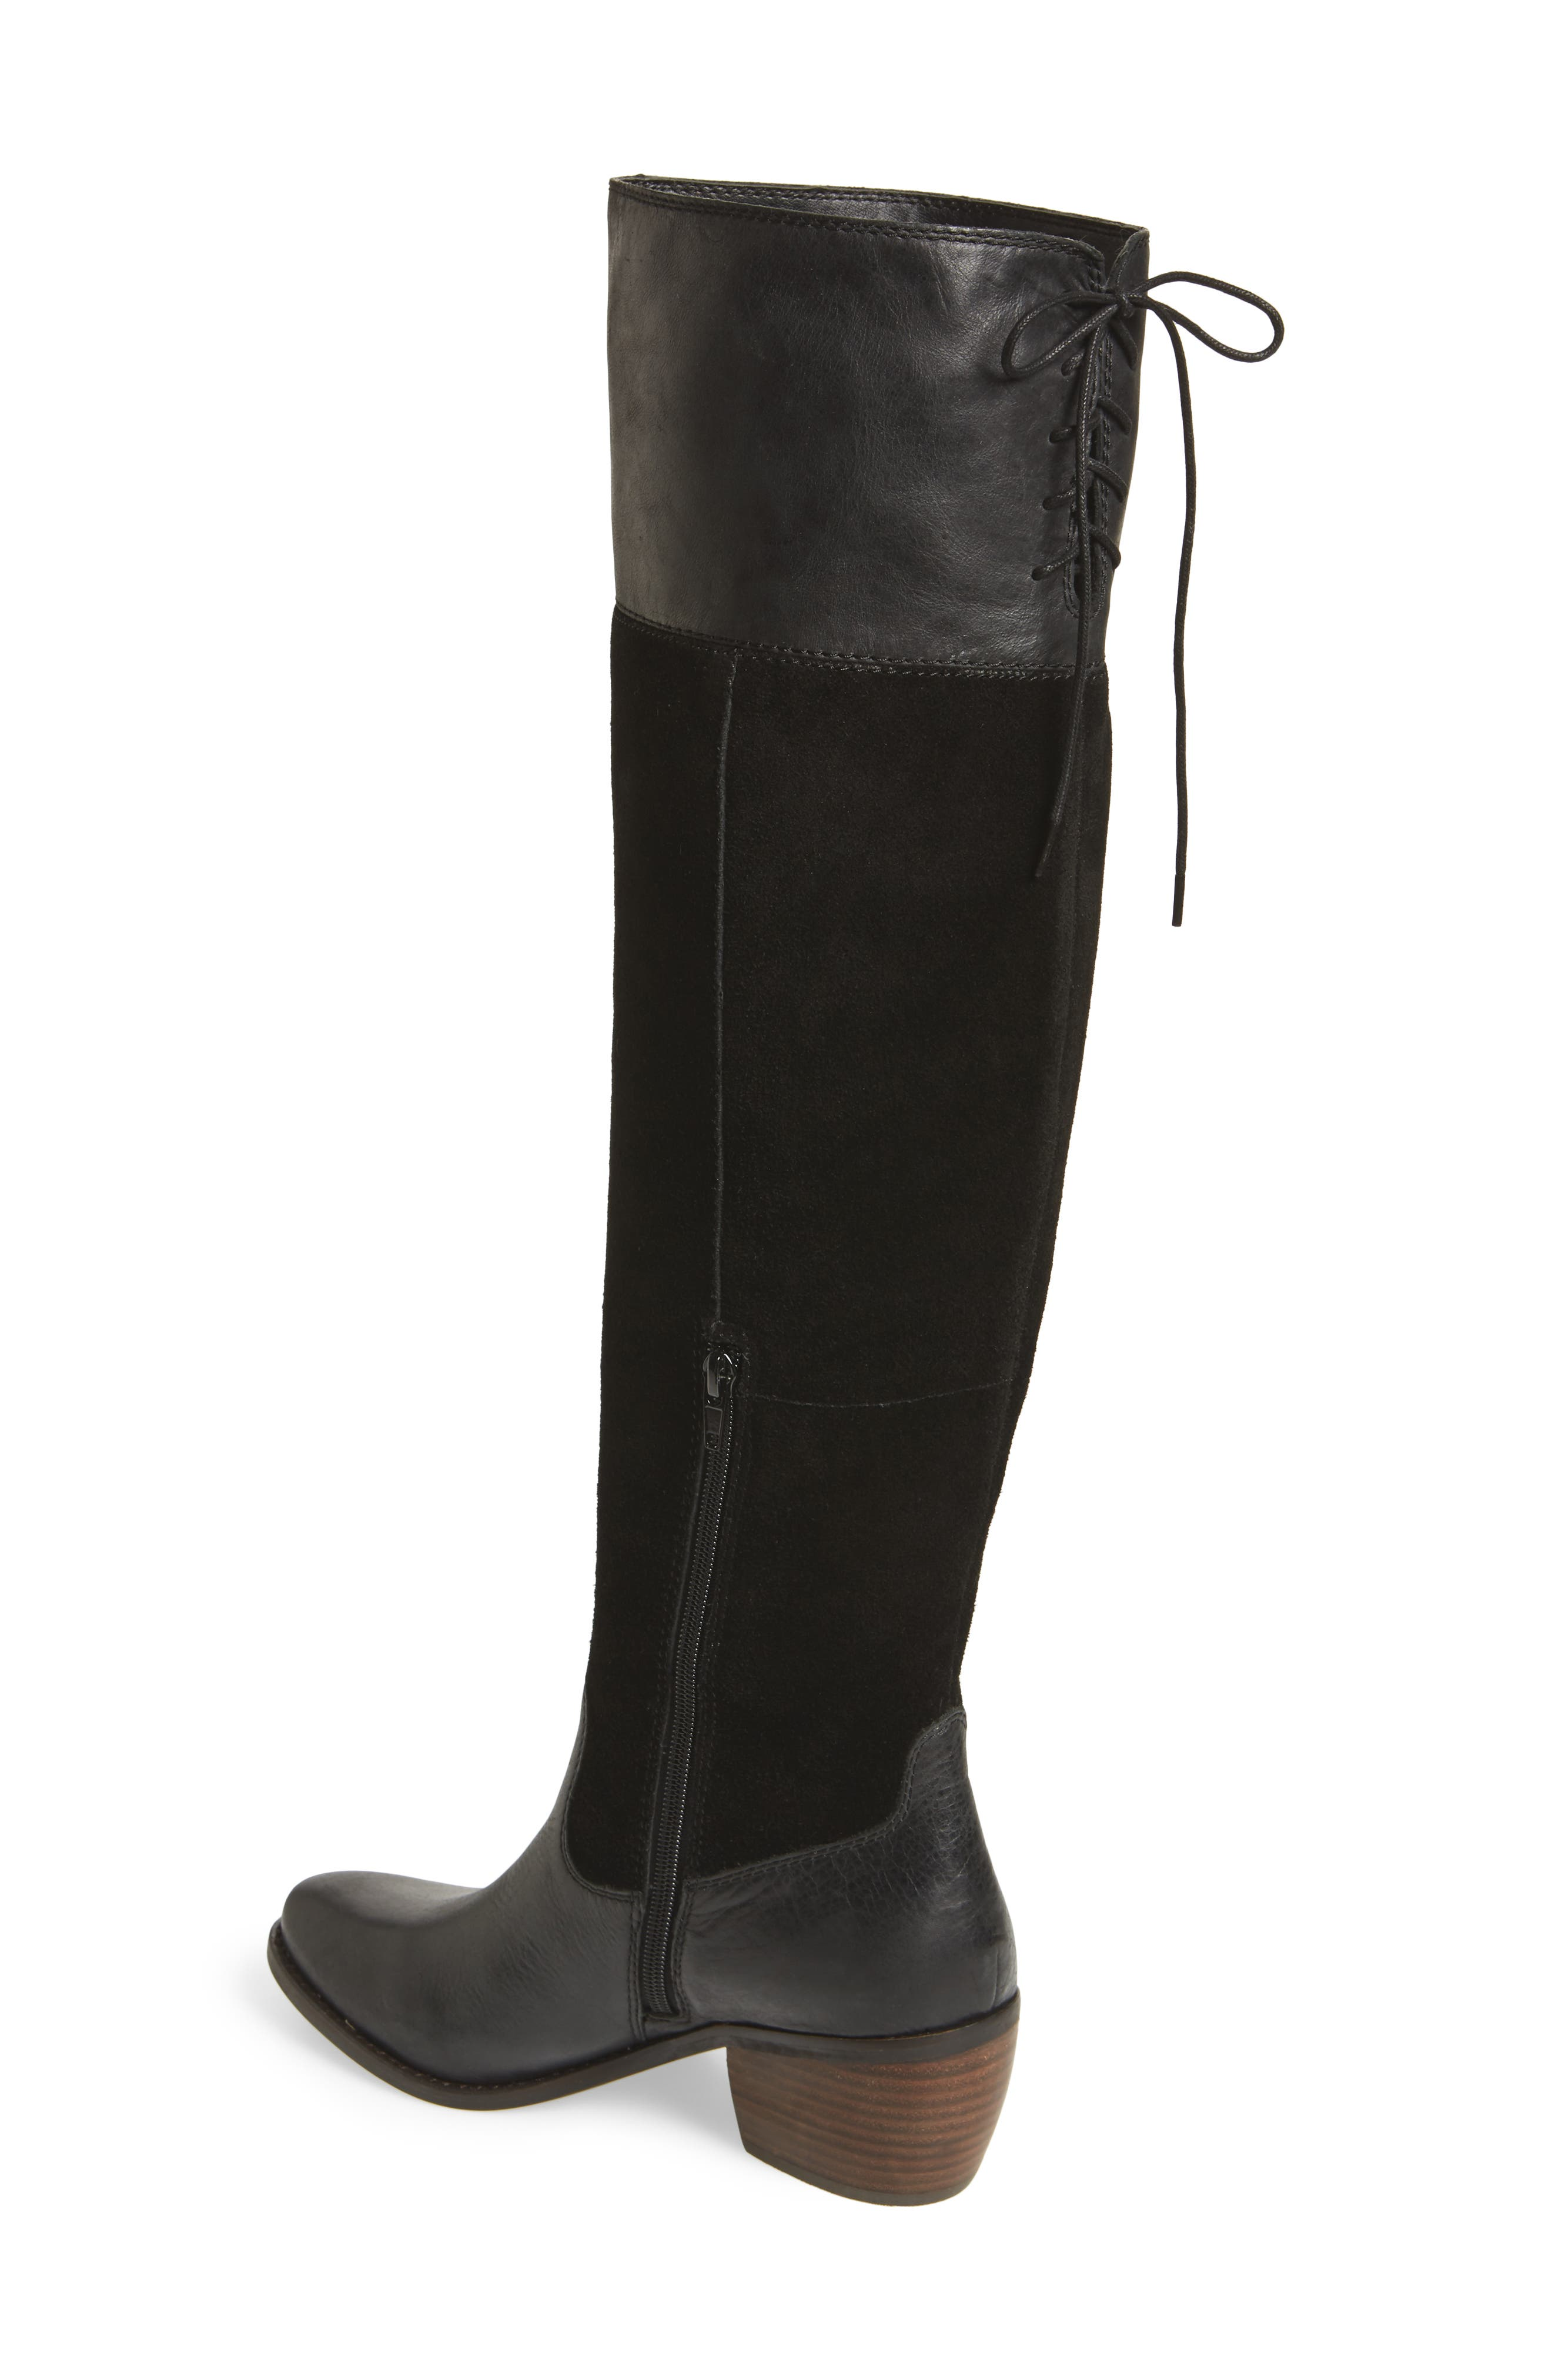 Komah Over the Knee Boot,                             Alternate thumbnail 2, color,                             001